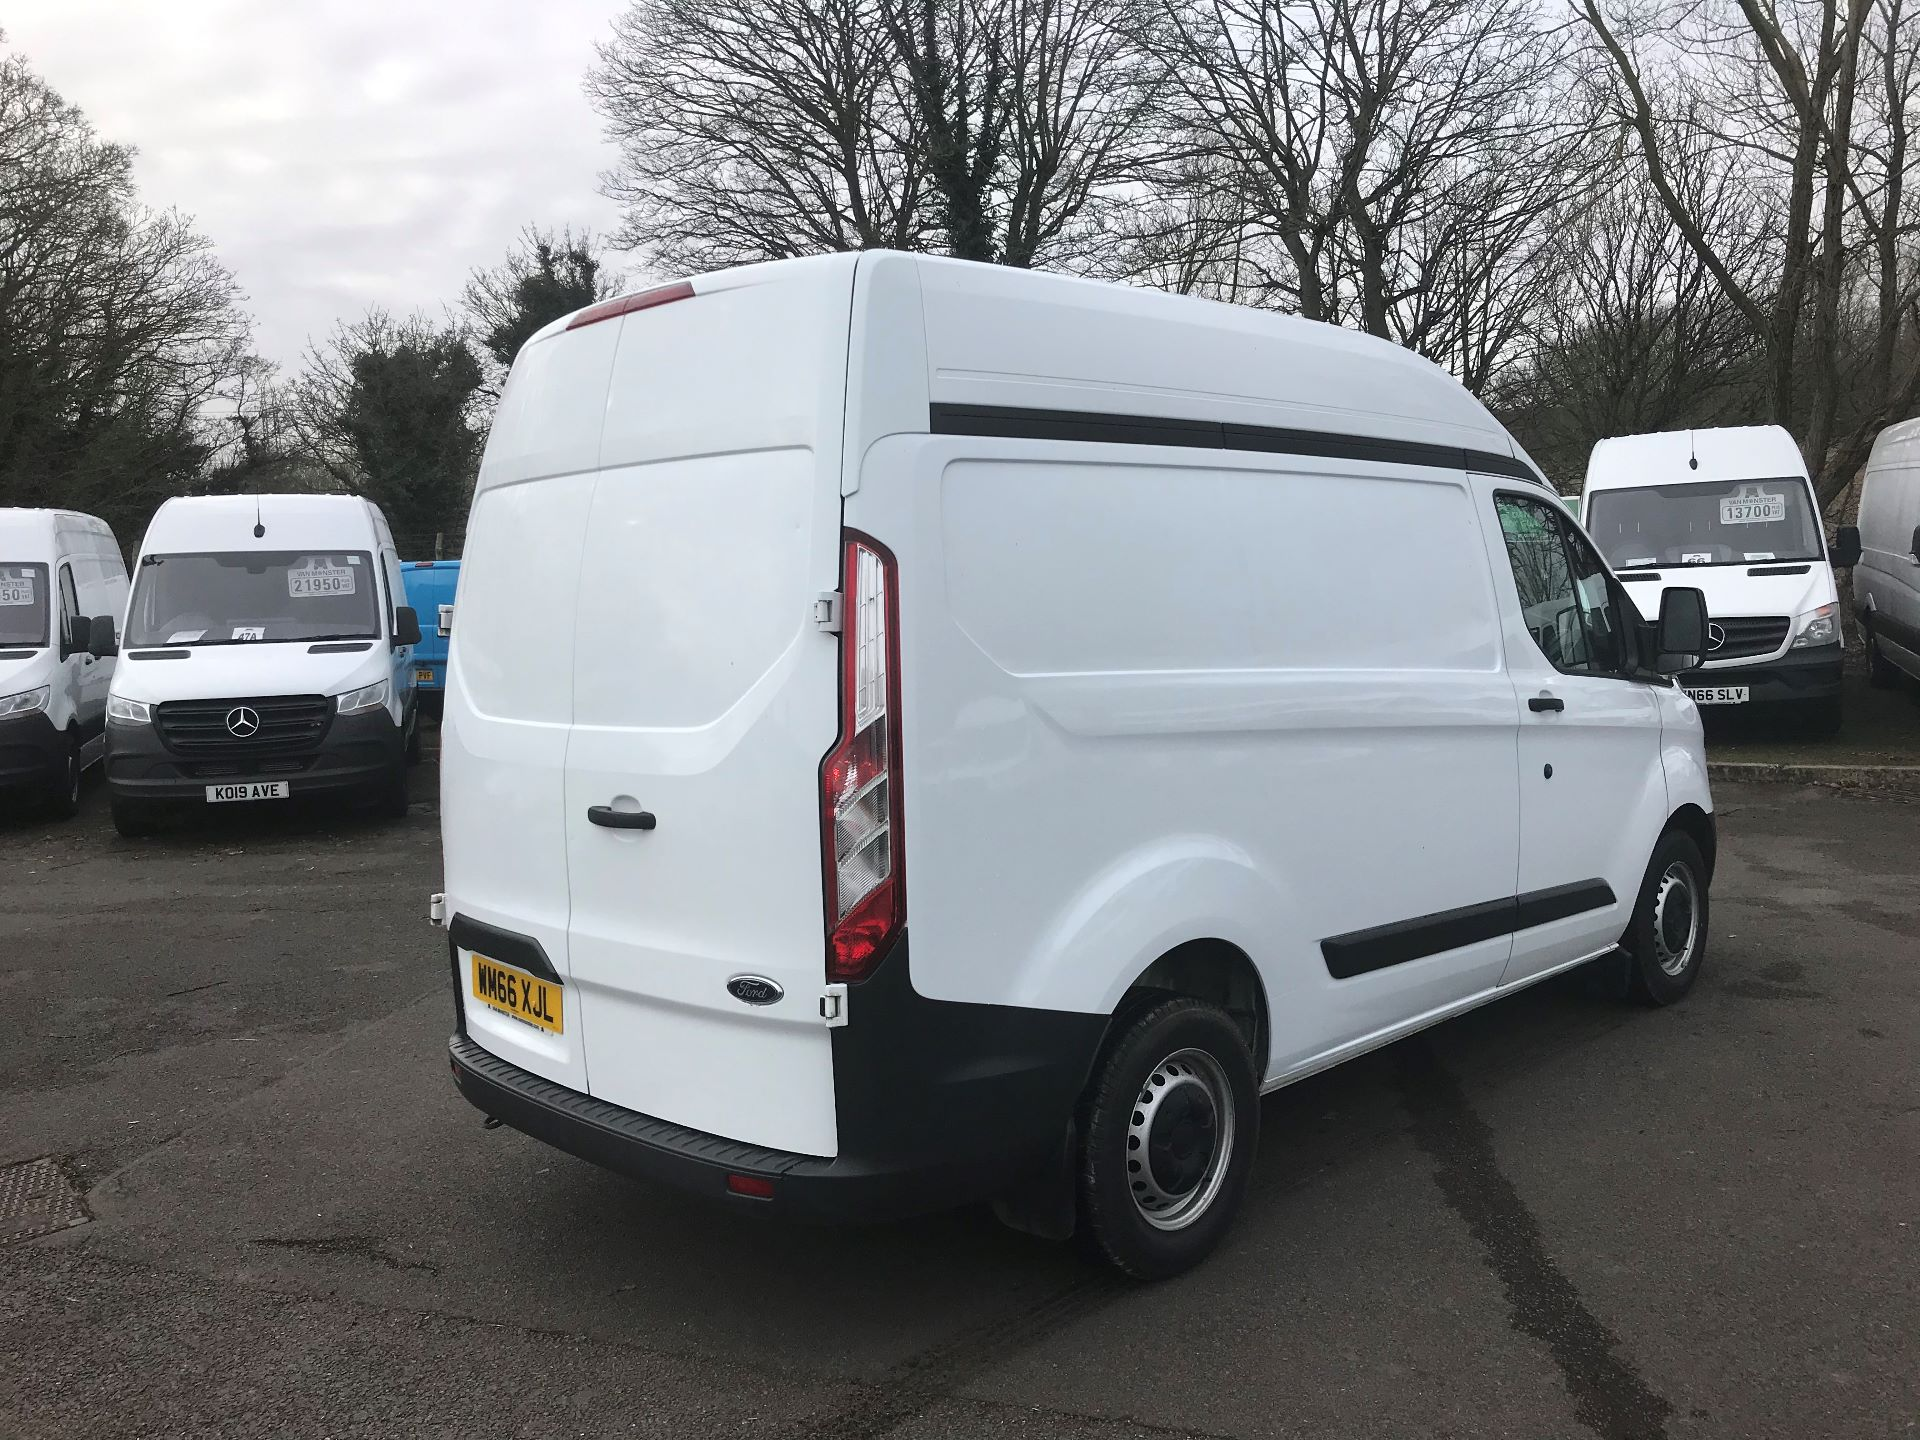 2016 Ford Transit Custom 2.0 TDCI 130PS HIGH ROOF VAN EURO 6 (WM66XJL) Image 9